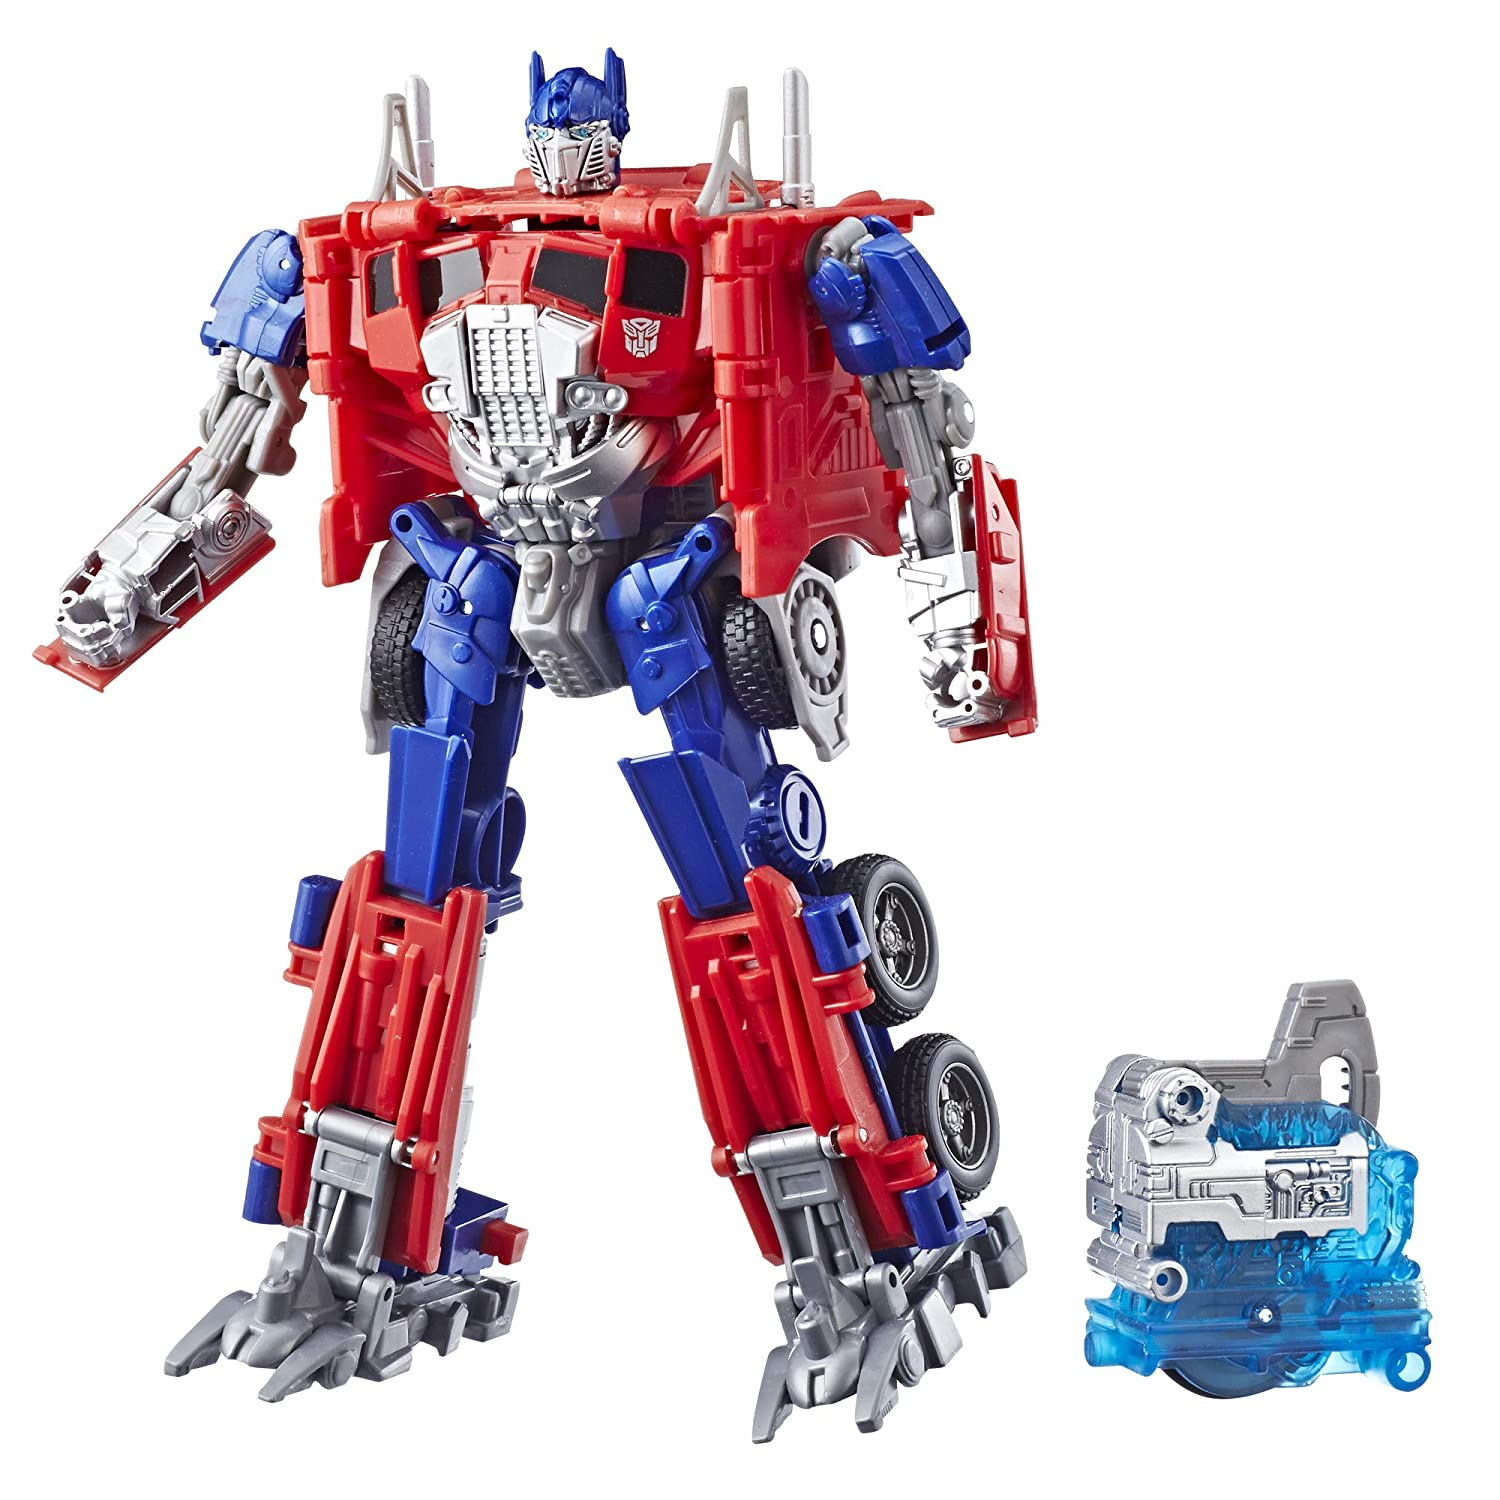 Transformers: Bumblebee Movie Toys, Energon Igniters Nitro Bumblebee Action Figure - Included Core Powers Driving Action - Toys for Kids 6 & Up, 7 7 Hasbro E0754